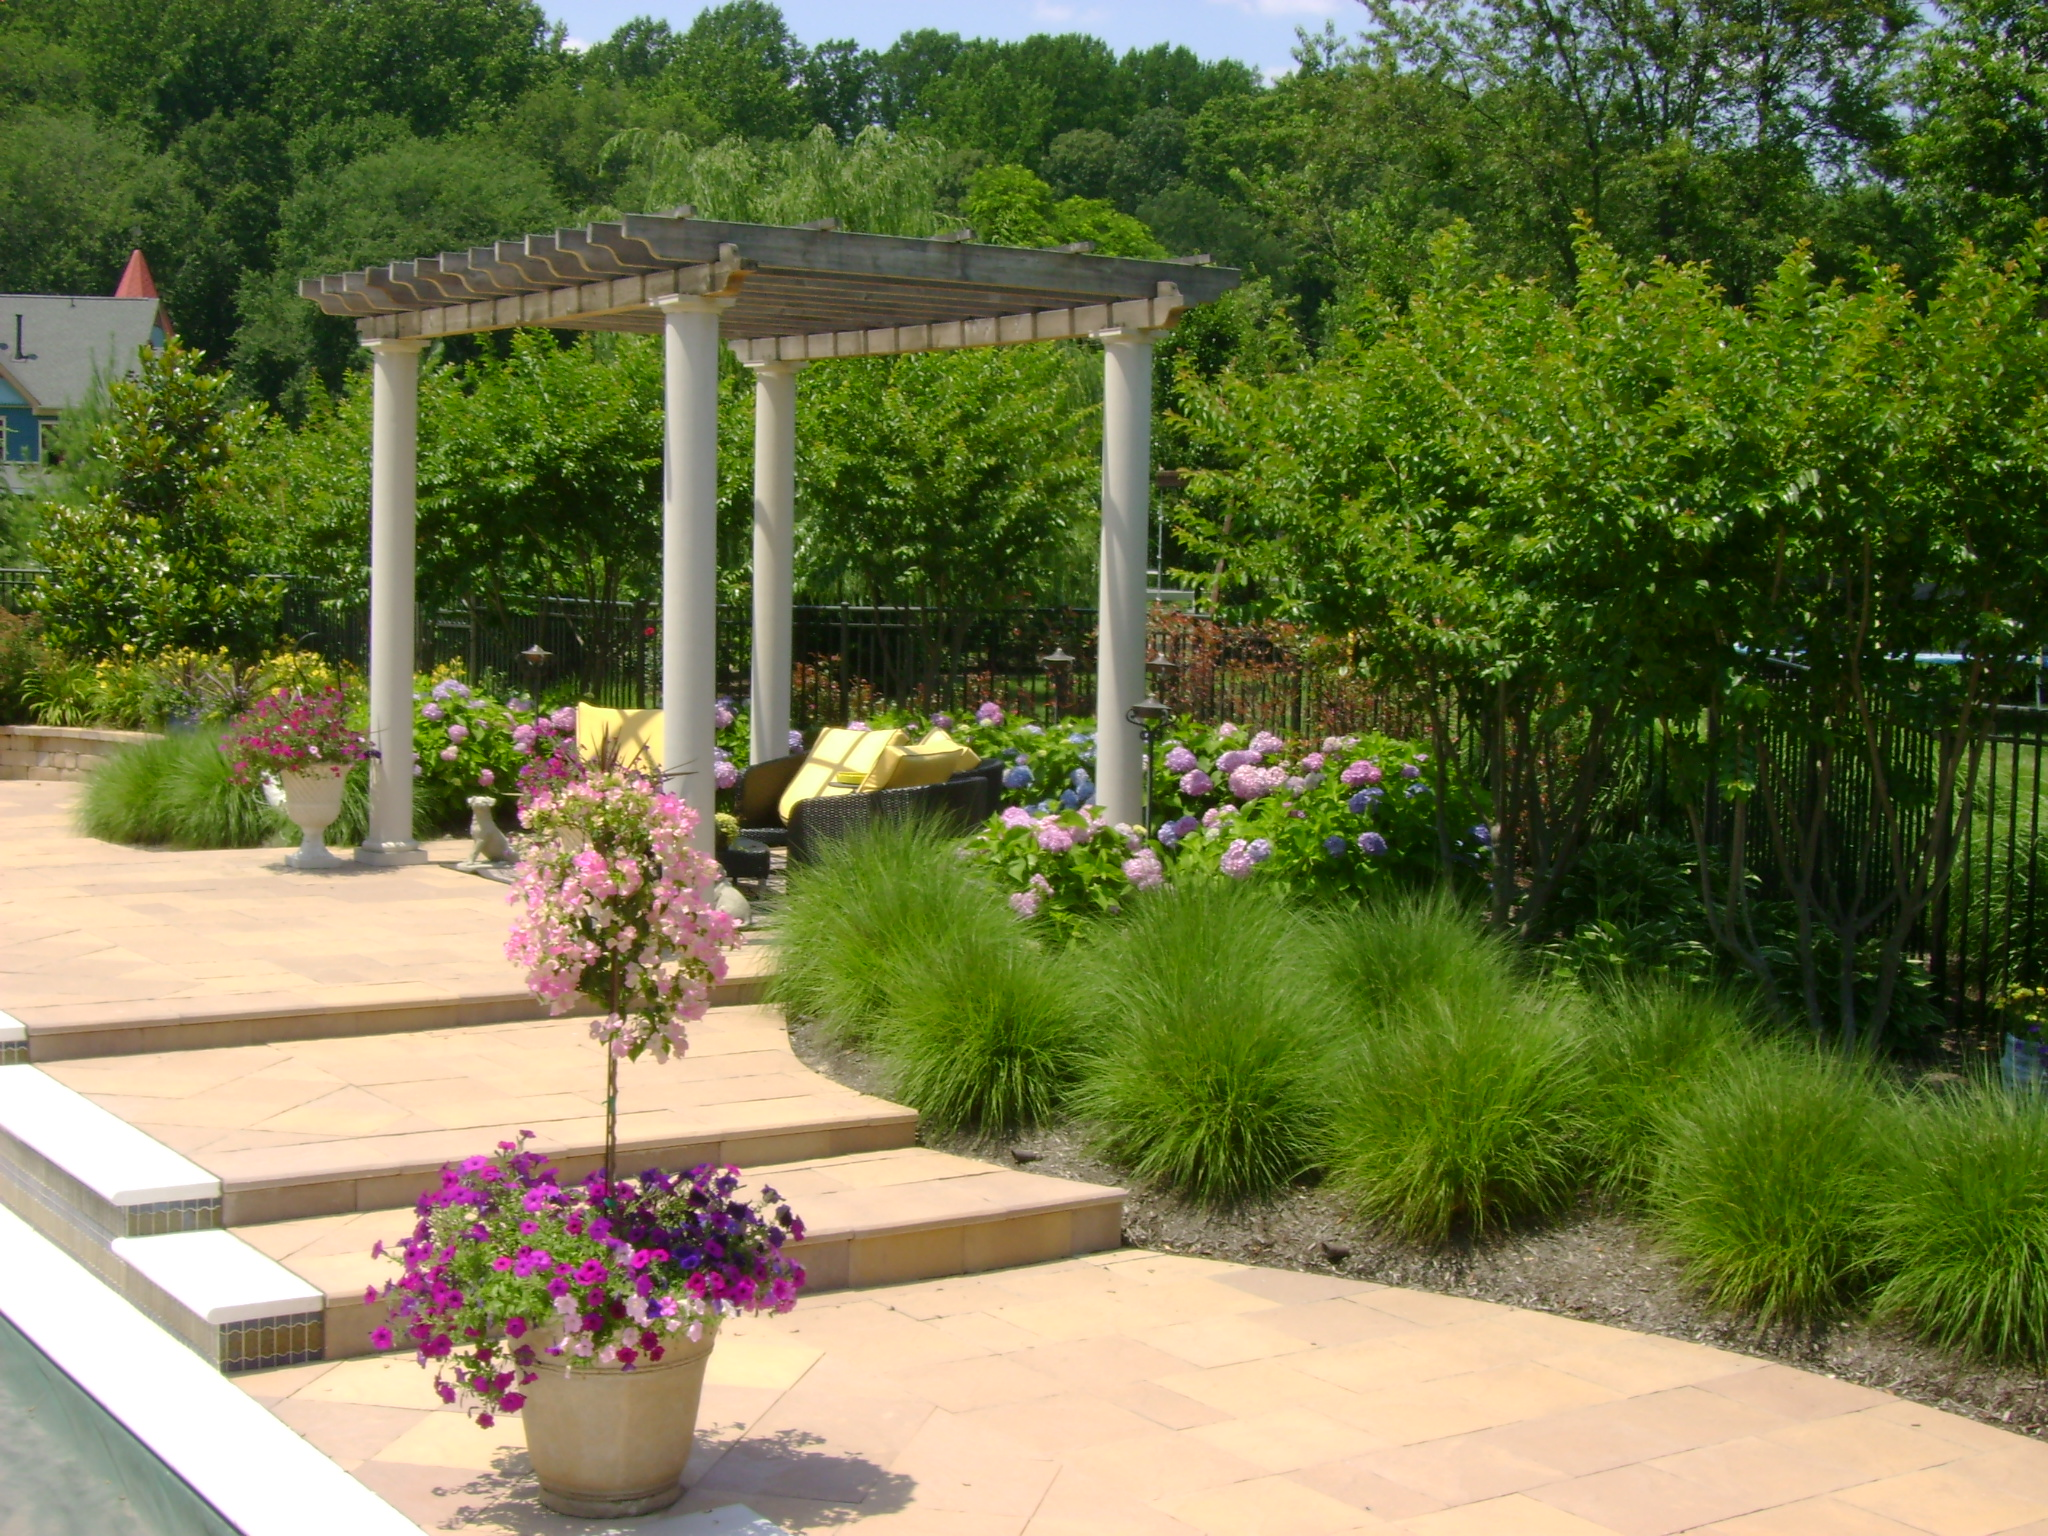 Pergola Steps Pavers Plants